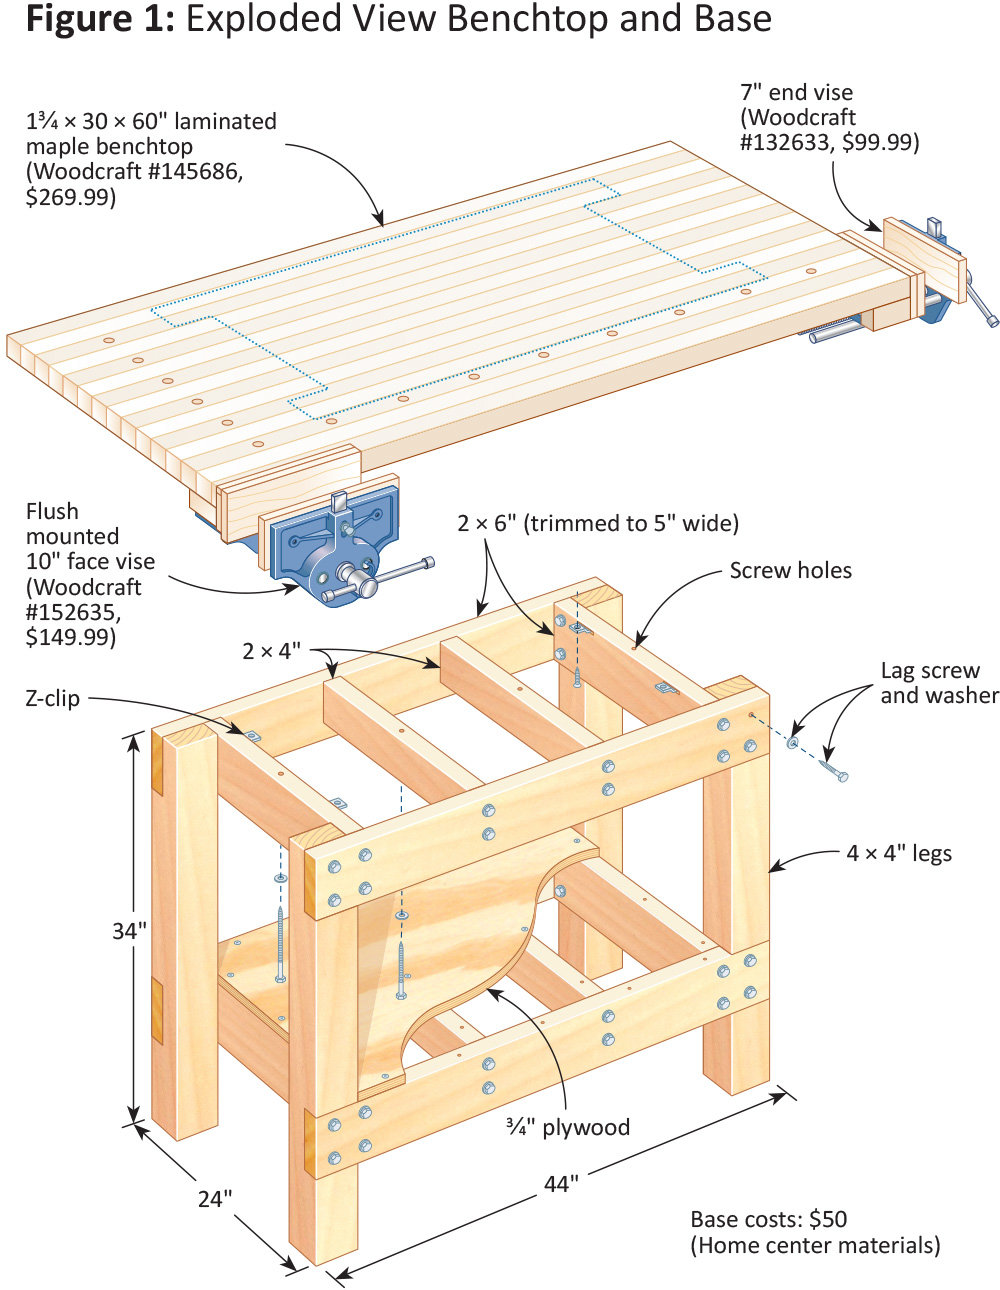 choosing a work bench: here's where woodworking get's